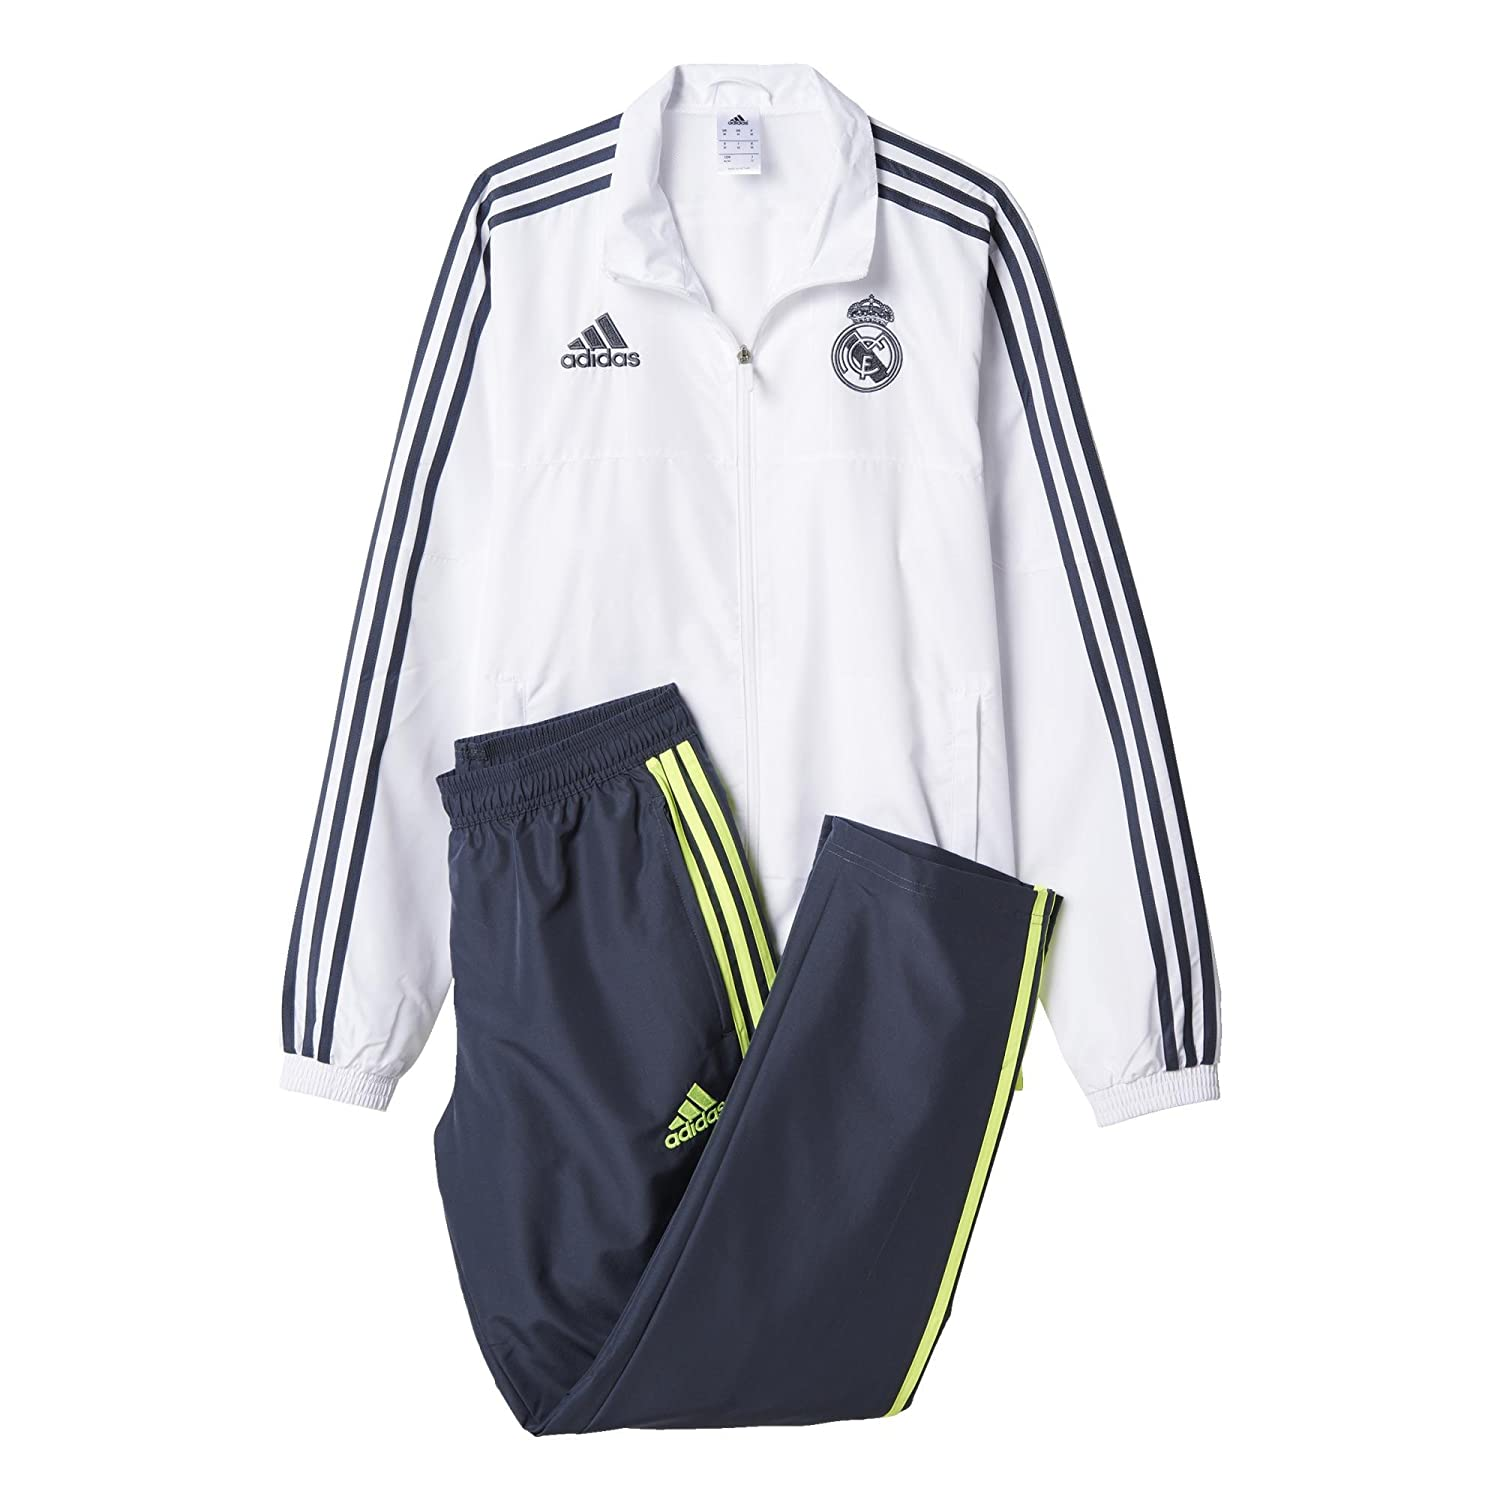 adidas, felpa uomo real madrid, bianco (whitedeepest spacesolar yellow), s